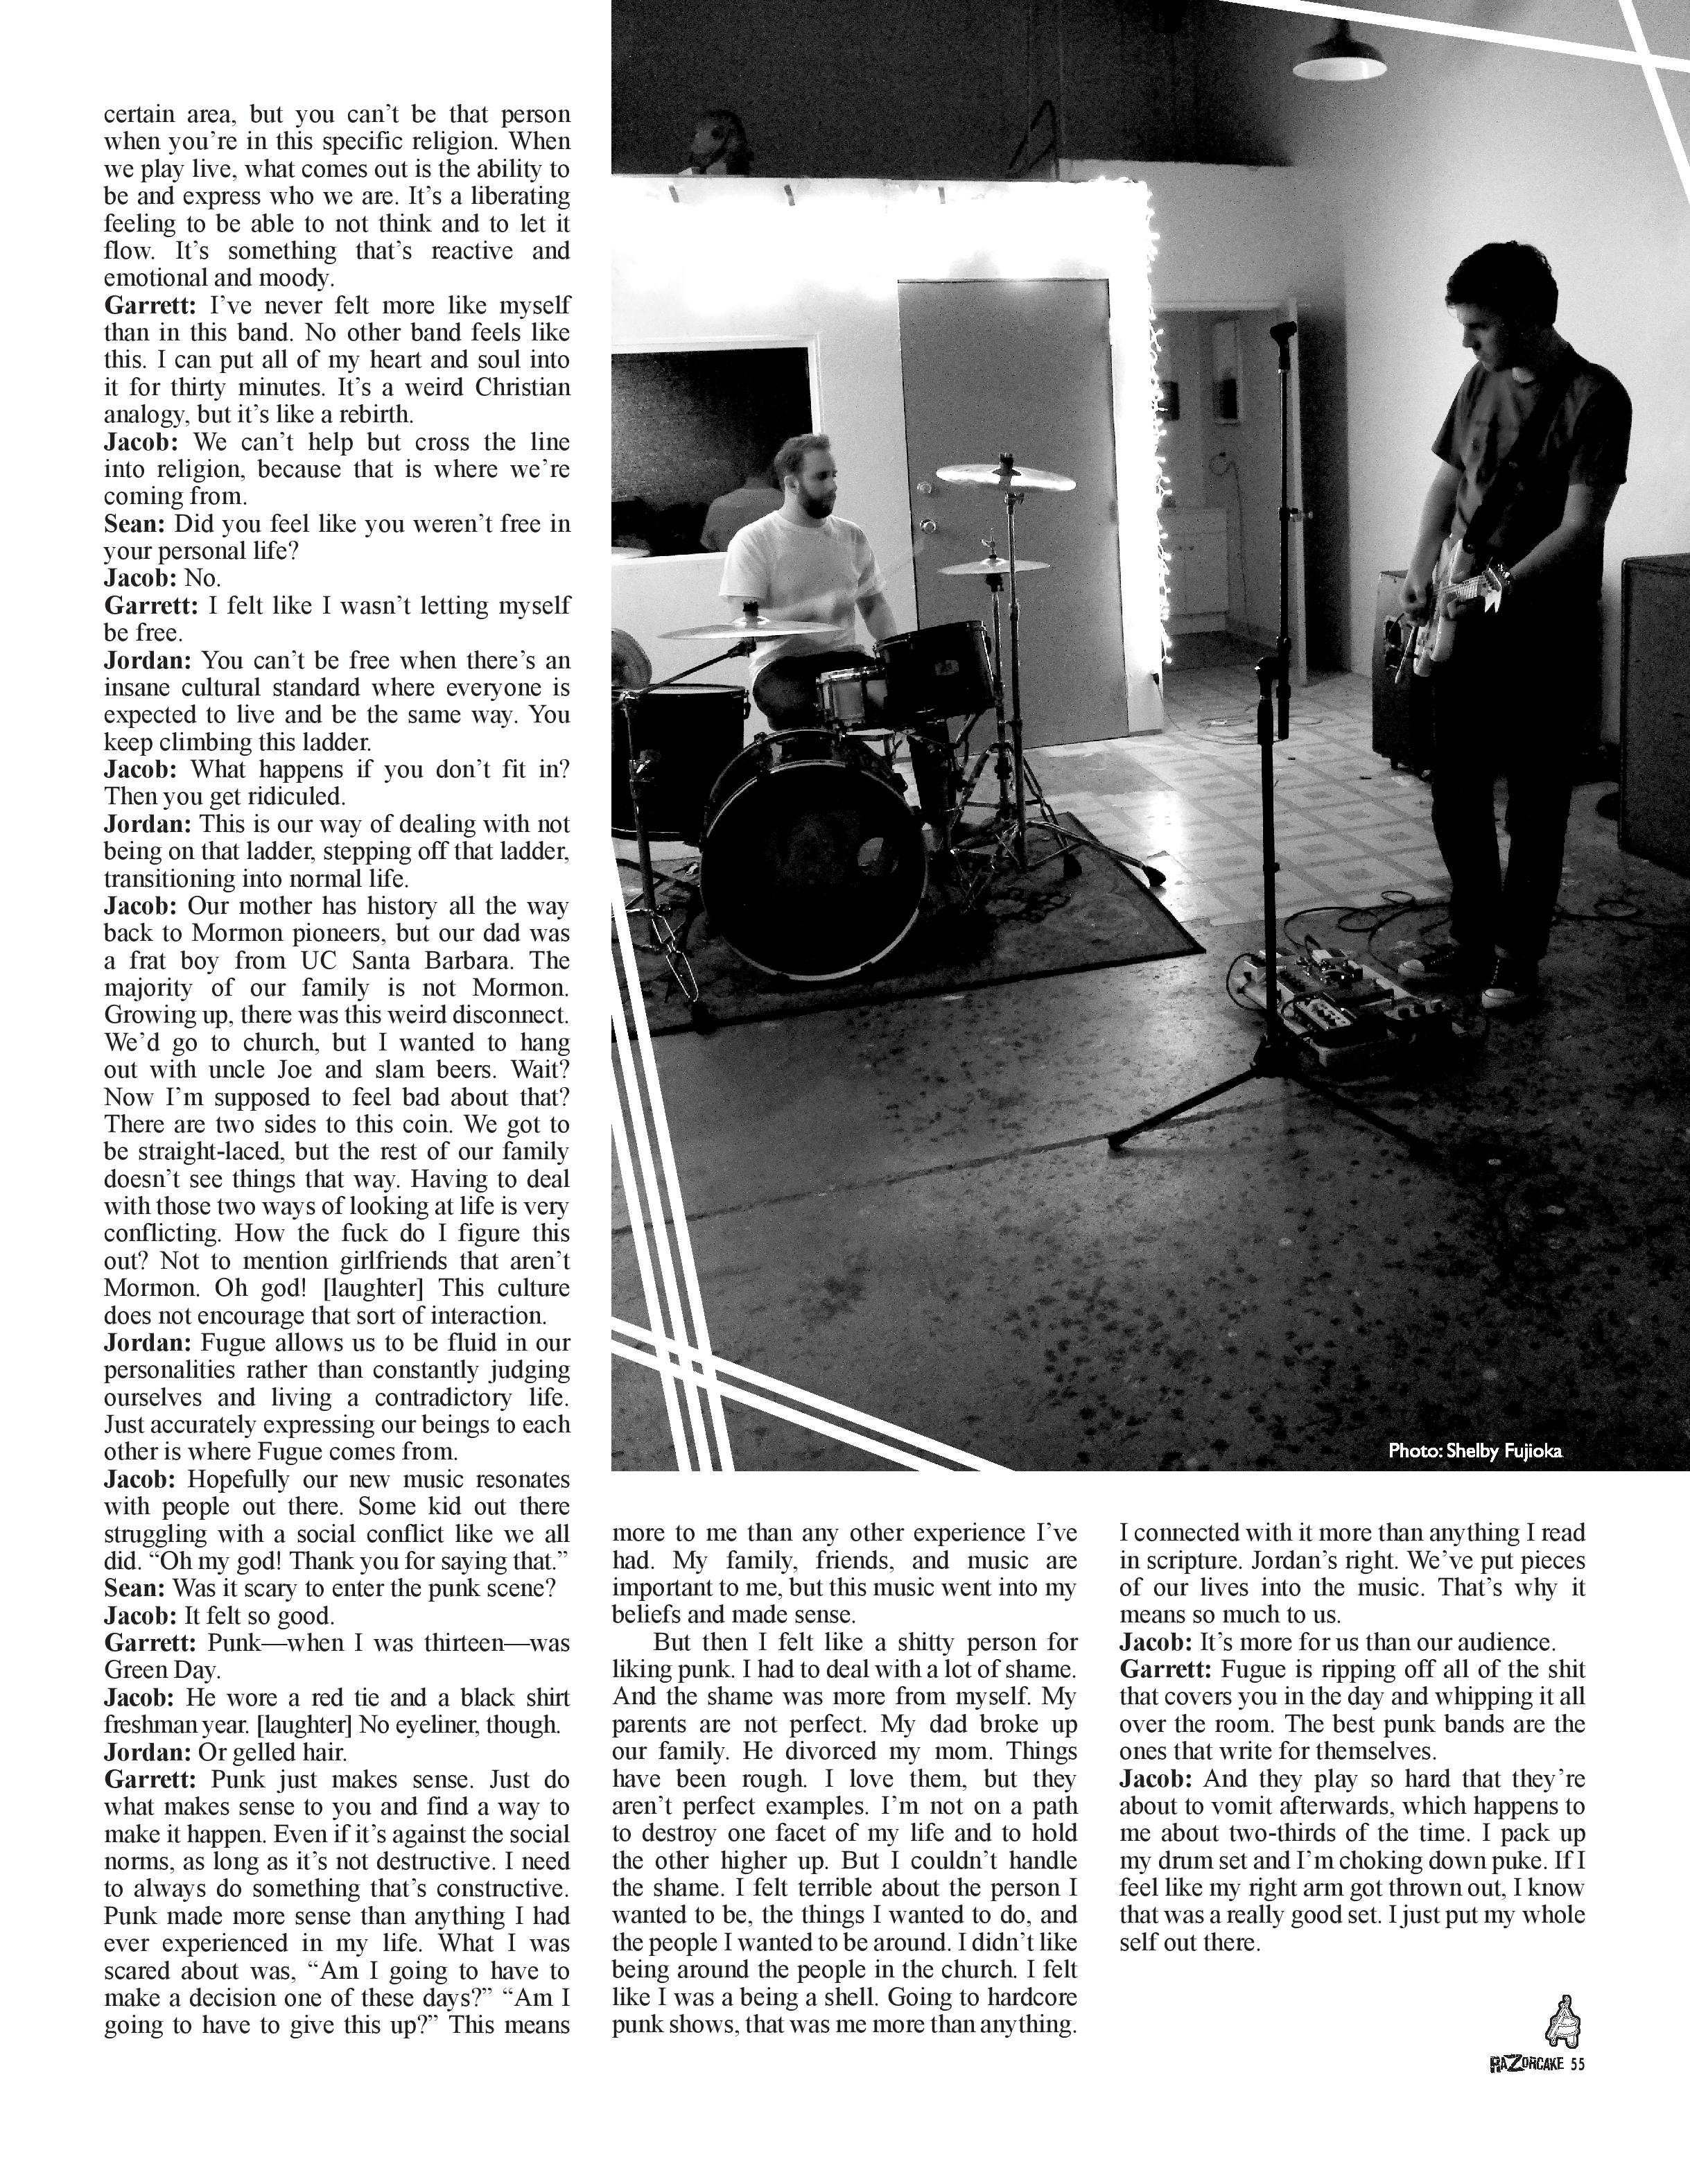 fugue_interview-page-008.jpg